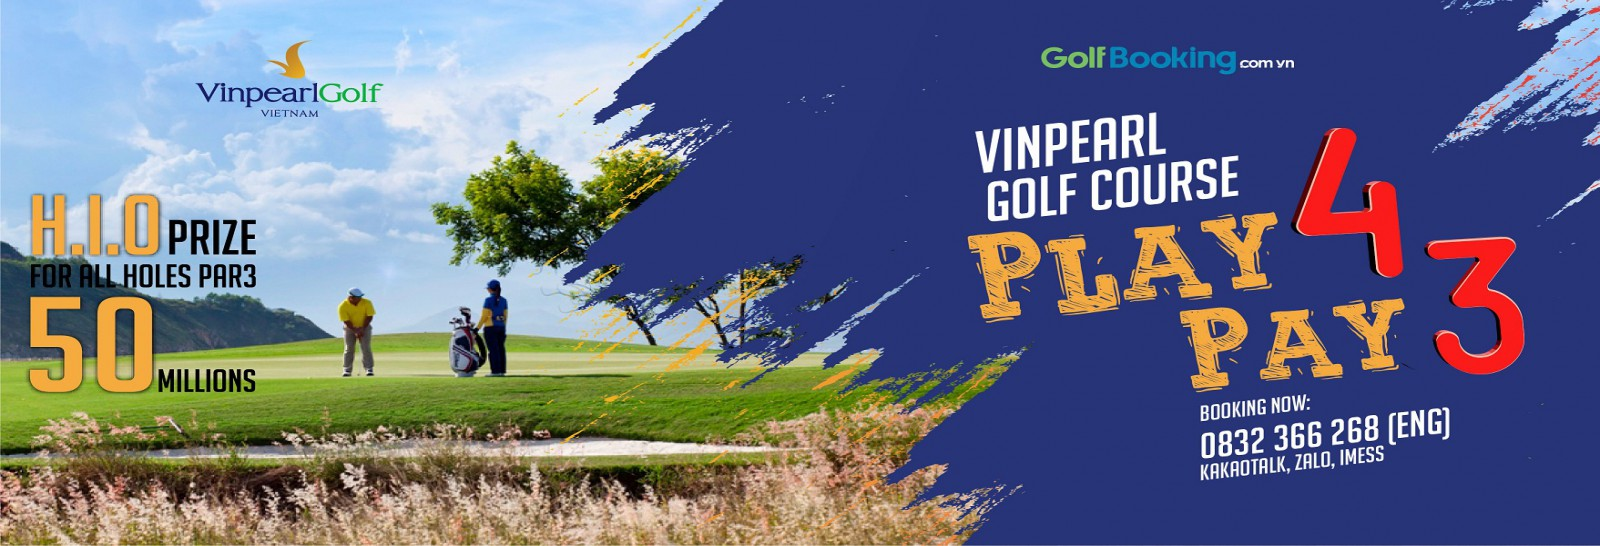 VINPEARL PLAY 4 PAY 3